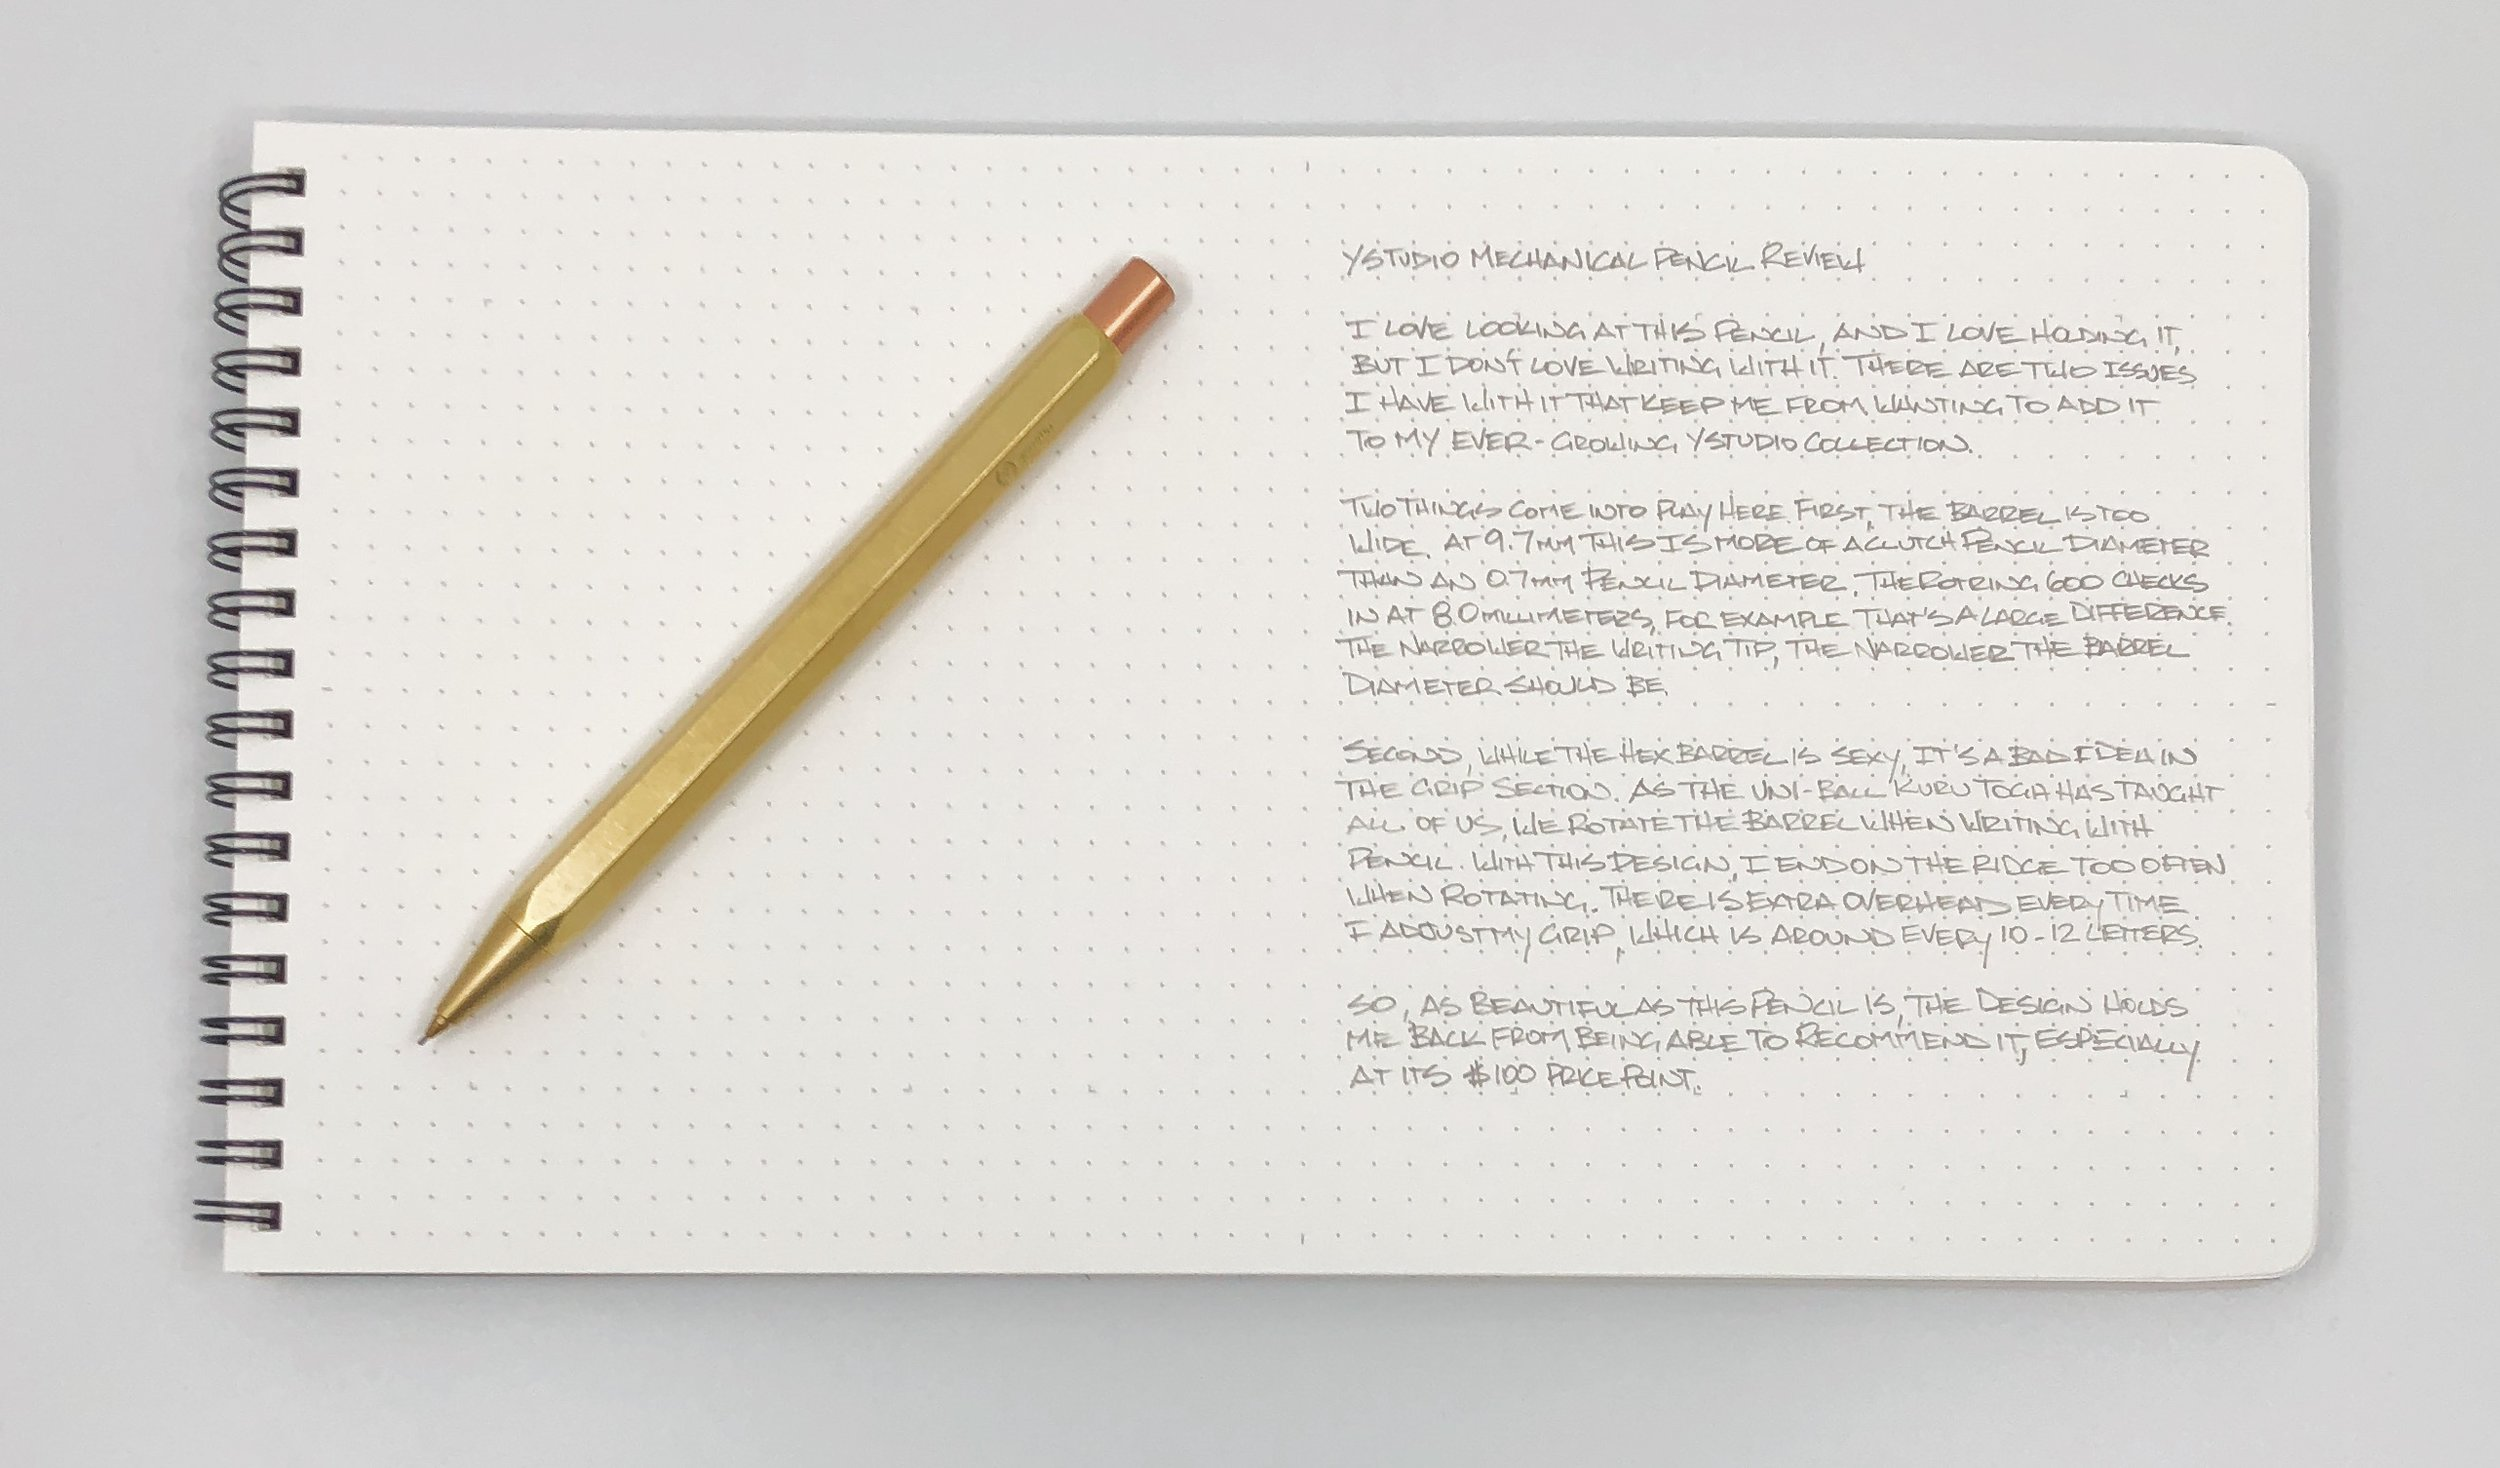 ystudio Mechanical Pencil Writing